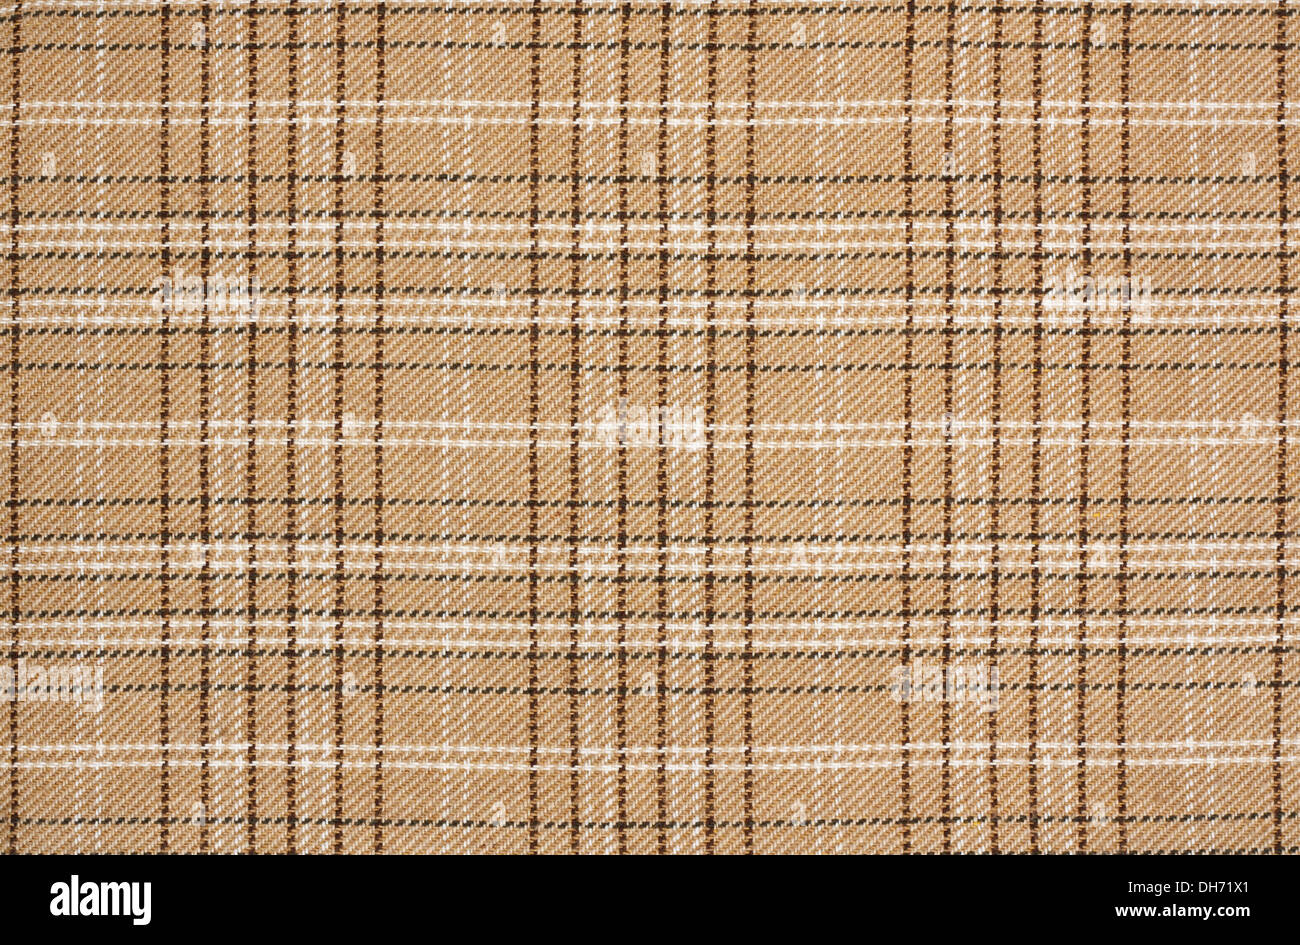 beige tartan background a checked plaid weave pattern with beige f07aa2cc7